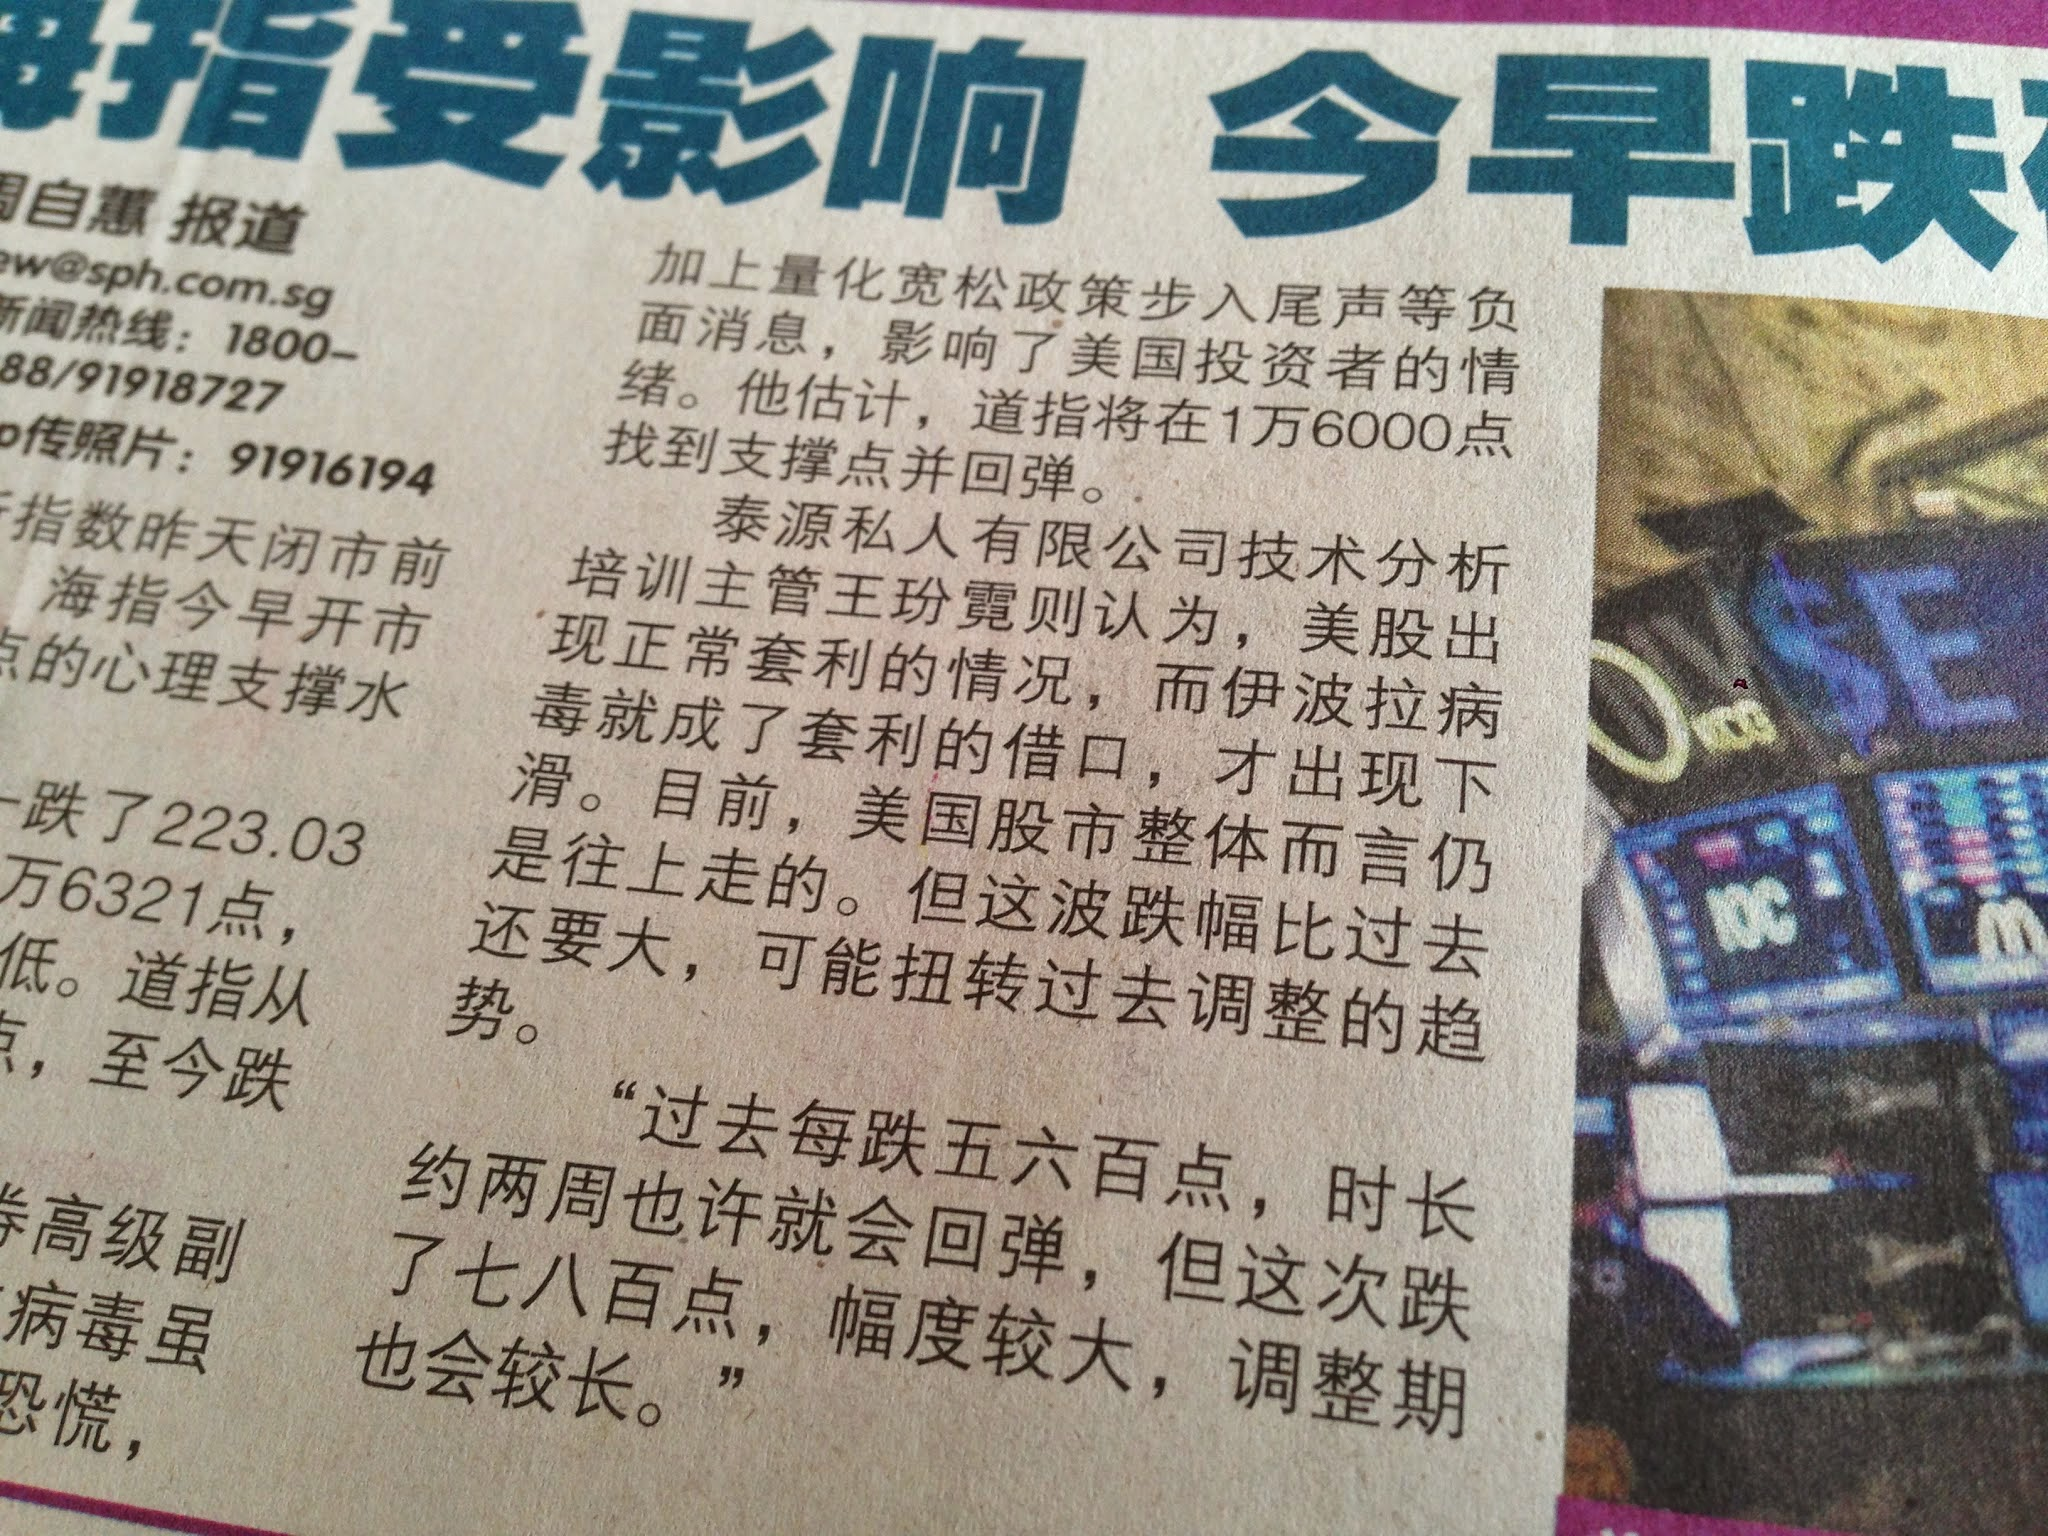 Photo: Shin Min Daily interviews Chief Trainer Binni Ong on 14 October 2014. Headline: '昨受美股市重挫影响,本地股市今午回稳' (Translated: Hurt by US stock market yesterday, local bourse recovers this afternoon)  According to Binni, US stock market fall was caused by healthy profit-taking by Ebola fears became a reason for panic. The market is still on an uptrend but volatility is now bigger than previous retracements. #stockmarket #us  美国套利是正常的,但伊波拉成了套利的借口。目前美国股市仍往上。这波跌幅逼过去大,可能扭转过去调整的趋势。